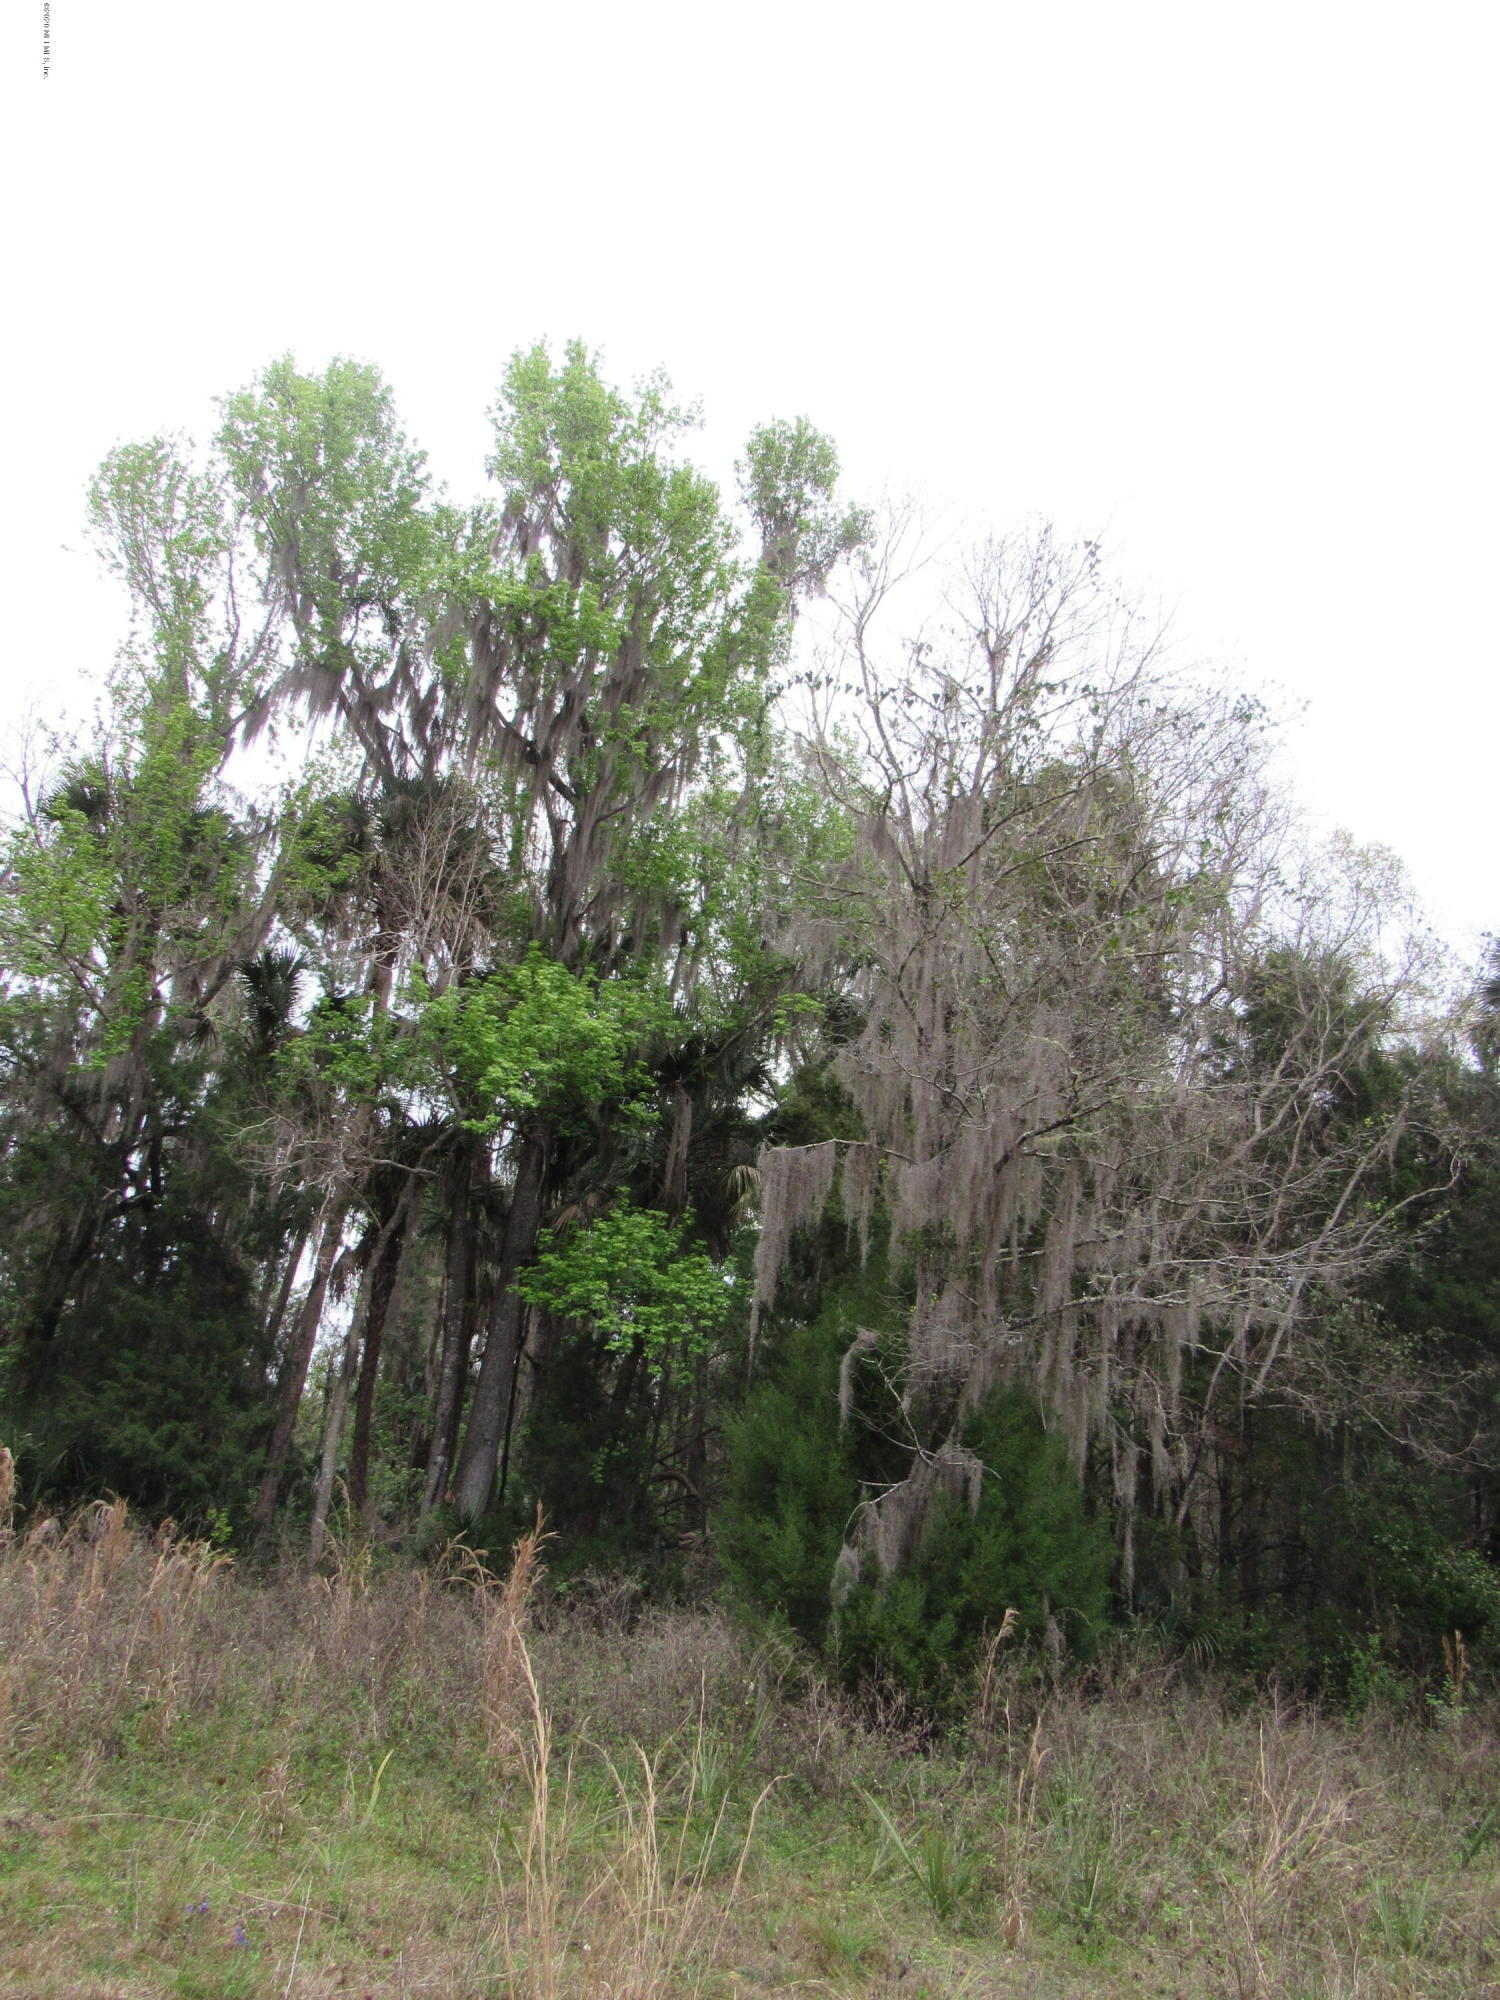 000 COUNTY ROAD 309, GEORGETOWN, FLORIDA 32139, ,Vacant land,For sale,COUNTY ROAD 309,1039163